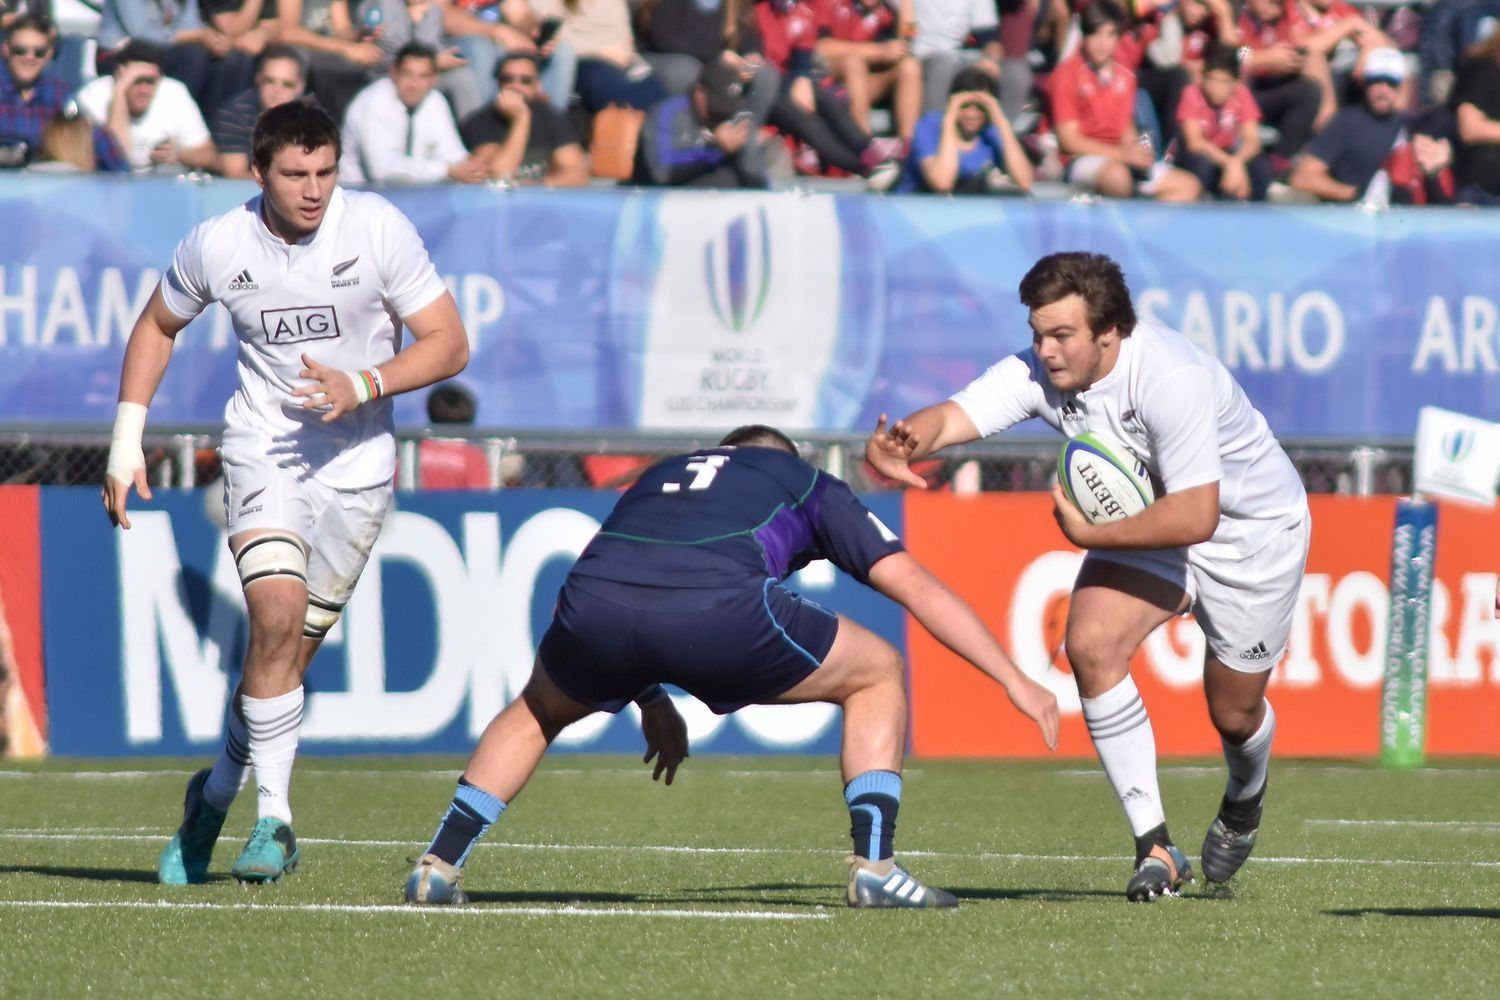 World Rugby U20 Championship 2019: New Zealand v Scotland